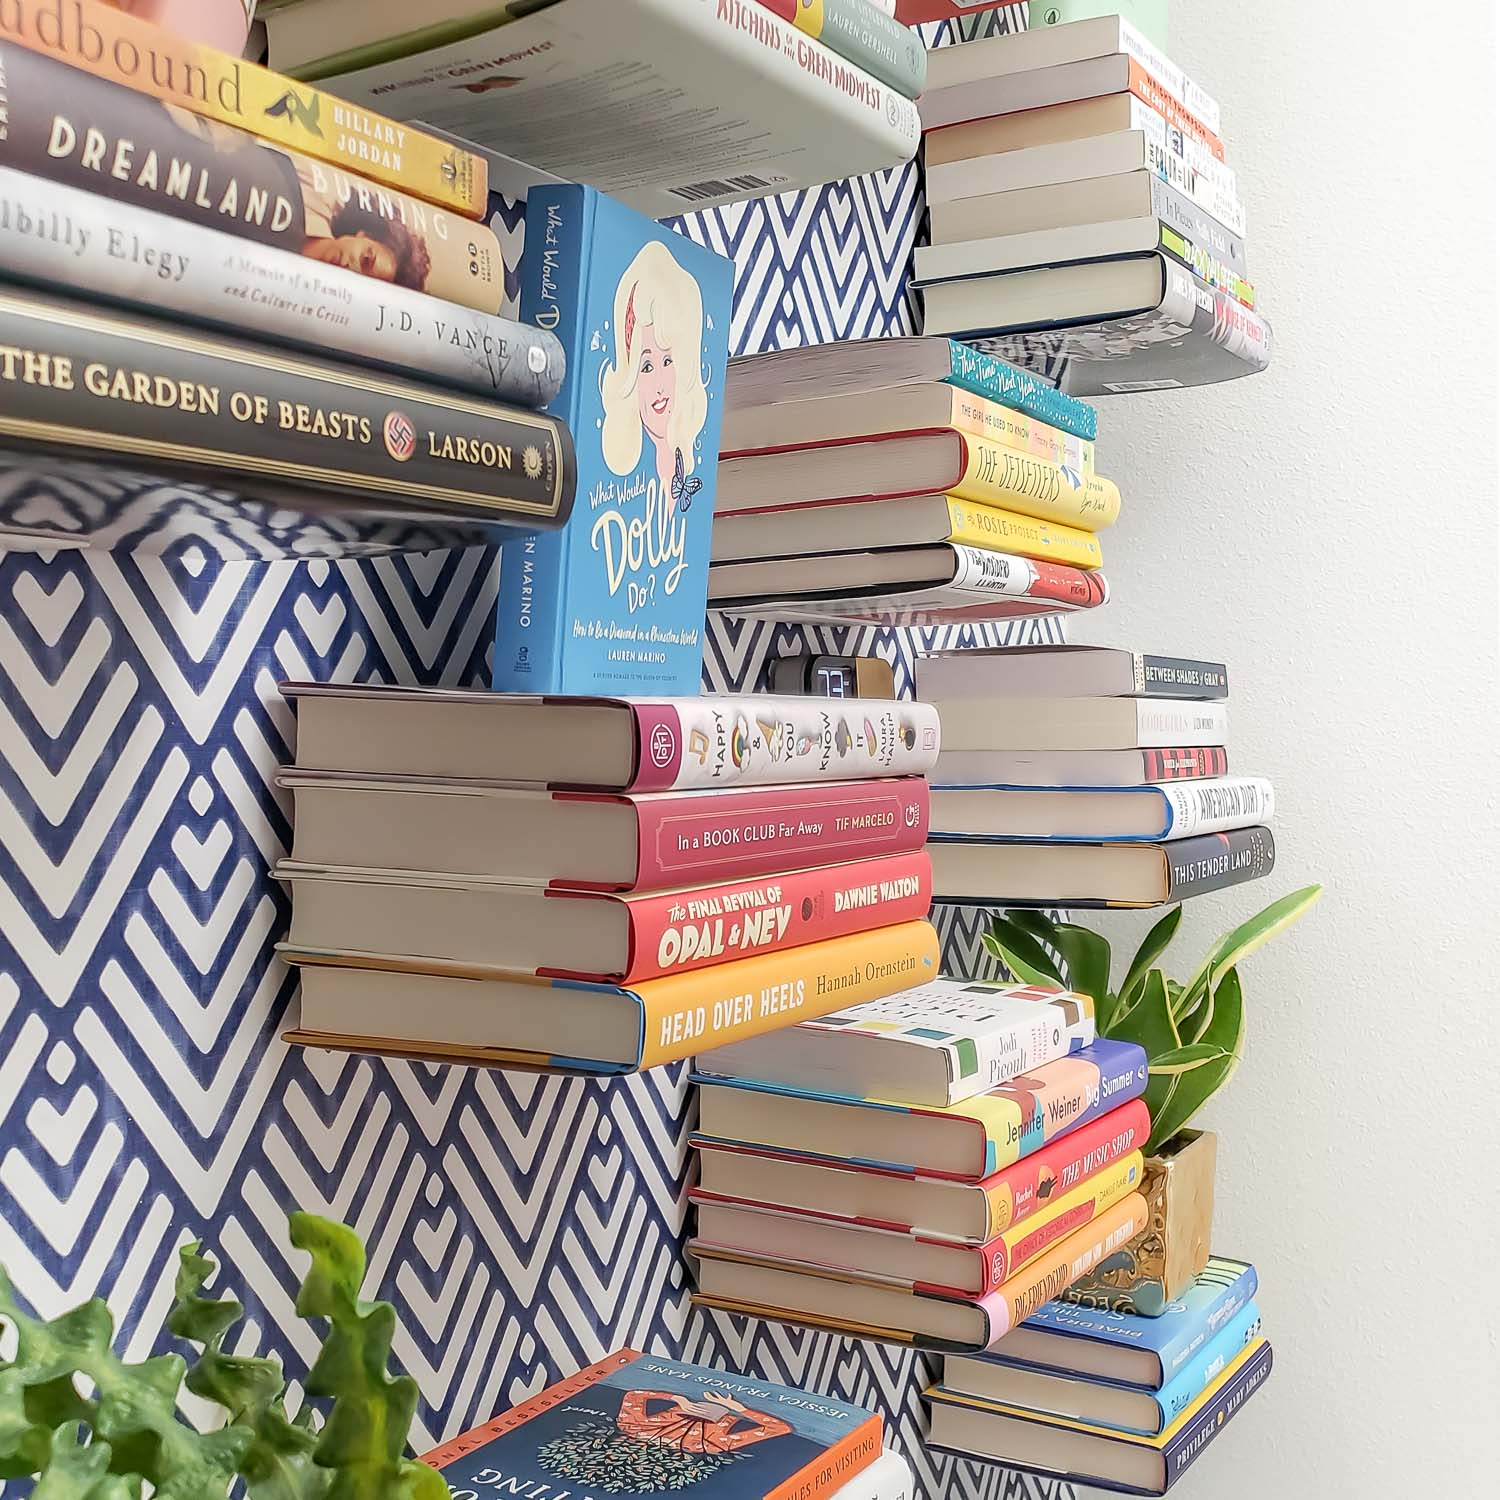 Books Stacks mounting on the wall with invisible brackets